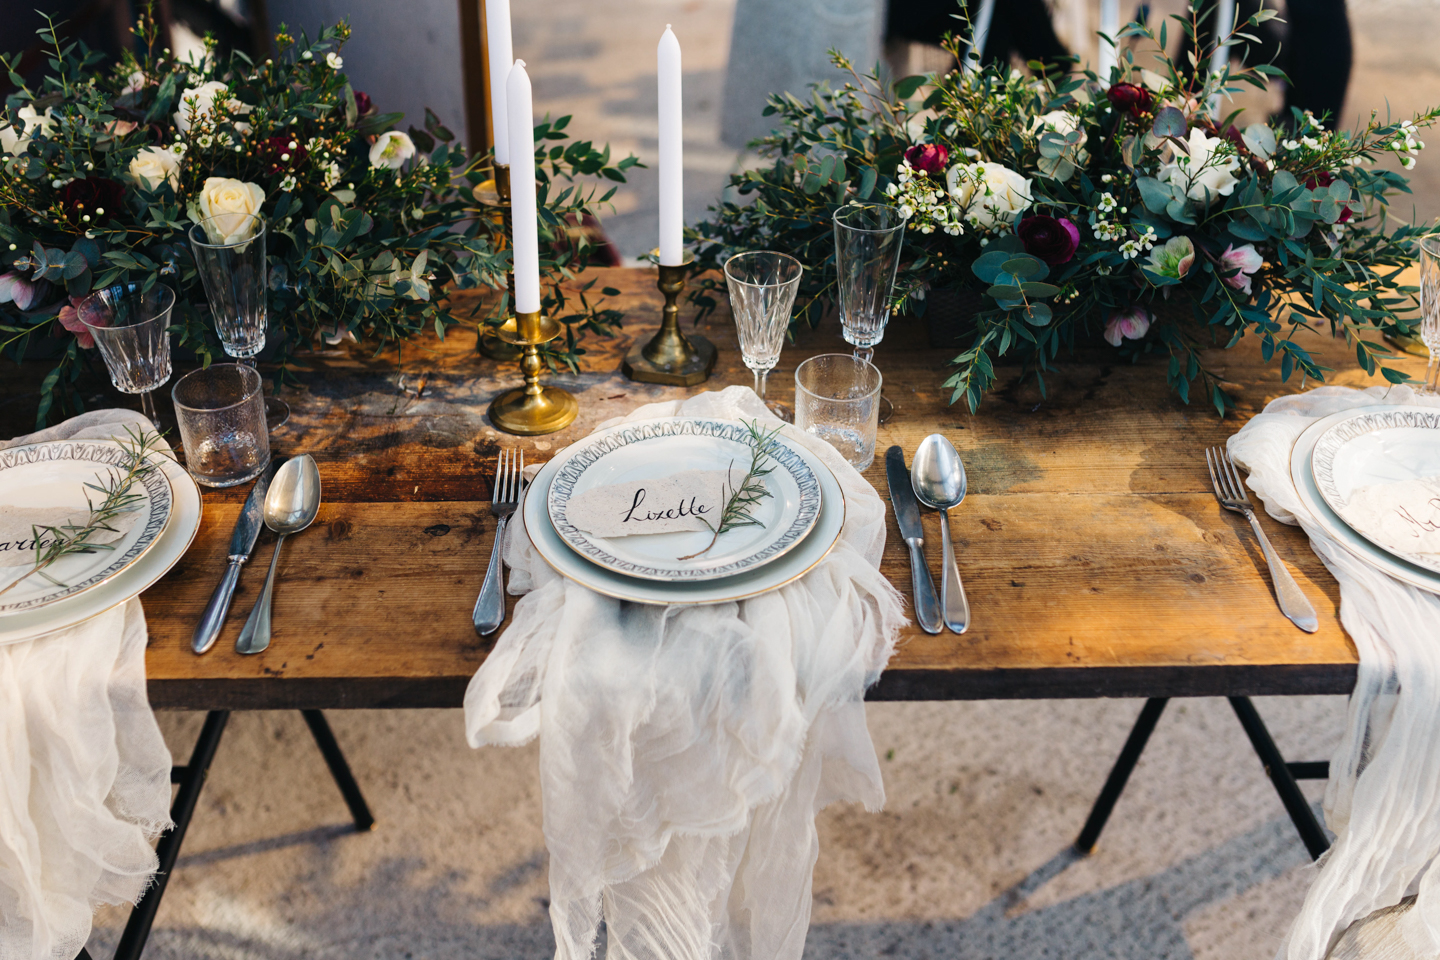 inspire styling - engaged 2016 - silvia falcomer photography